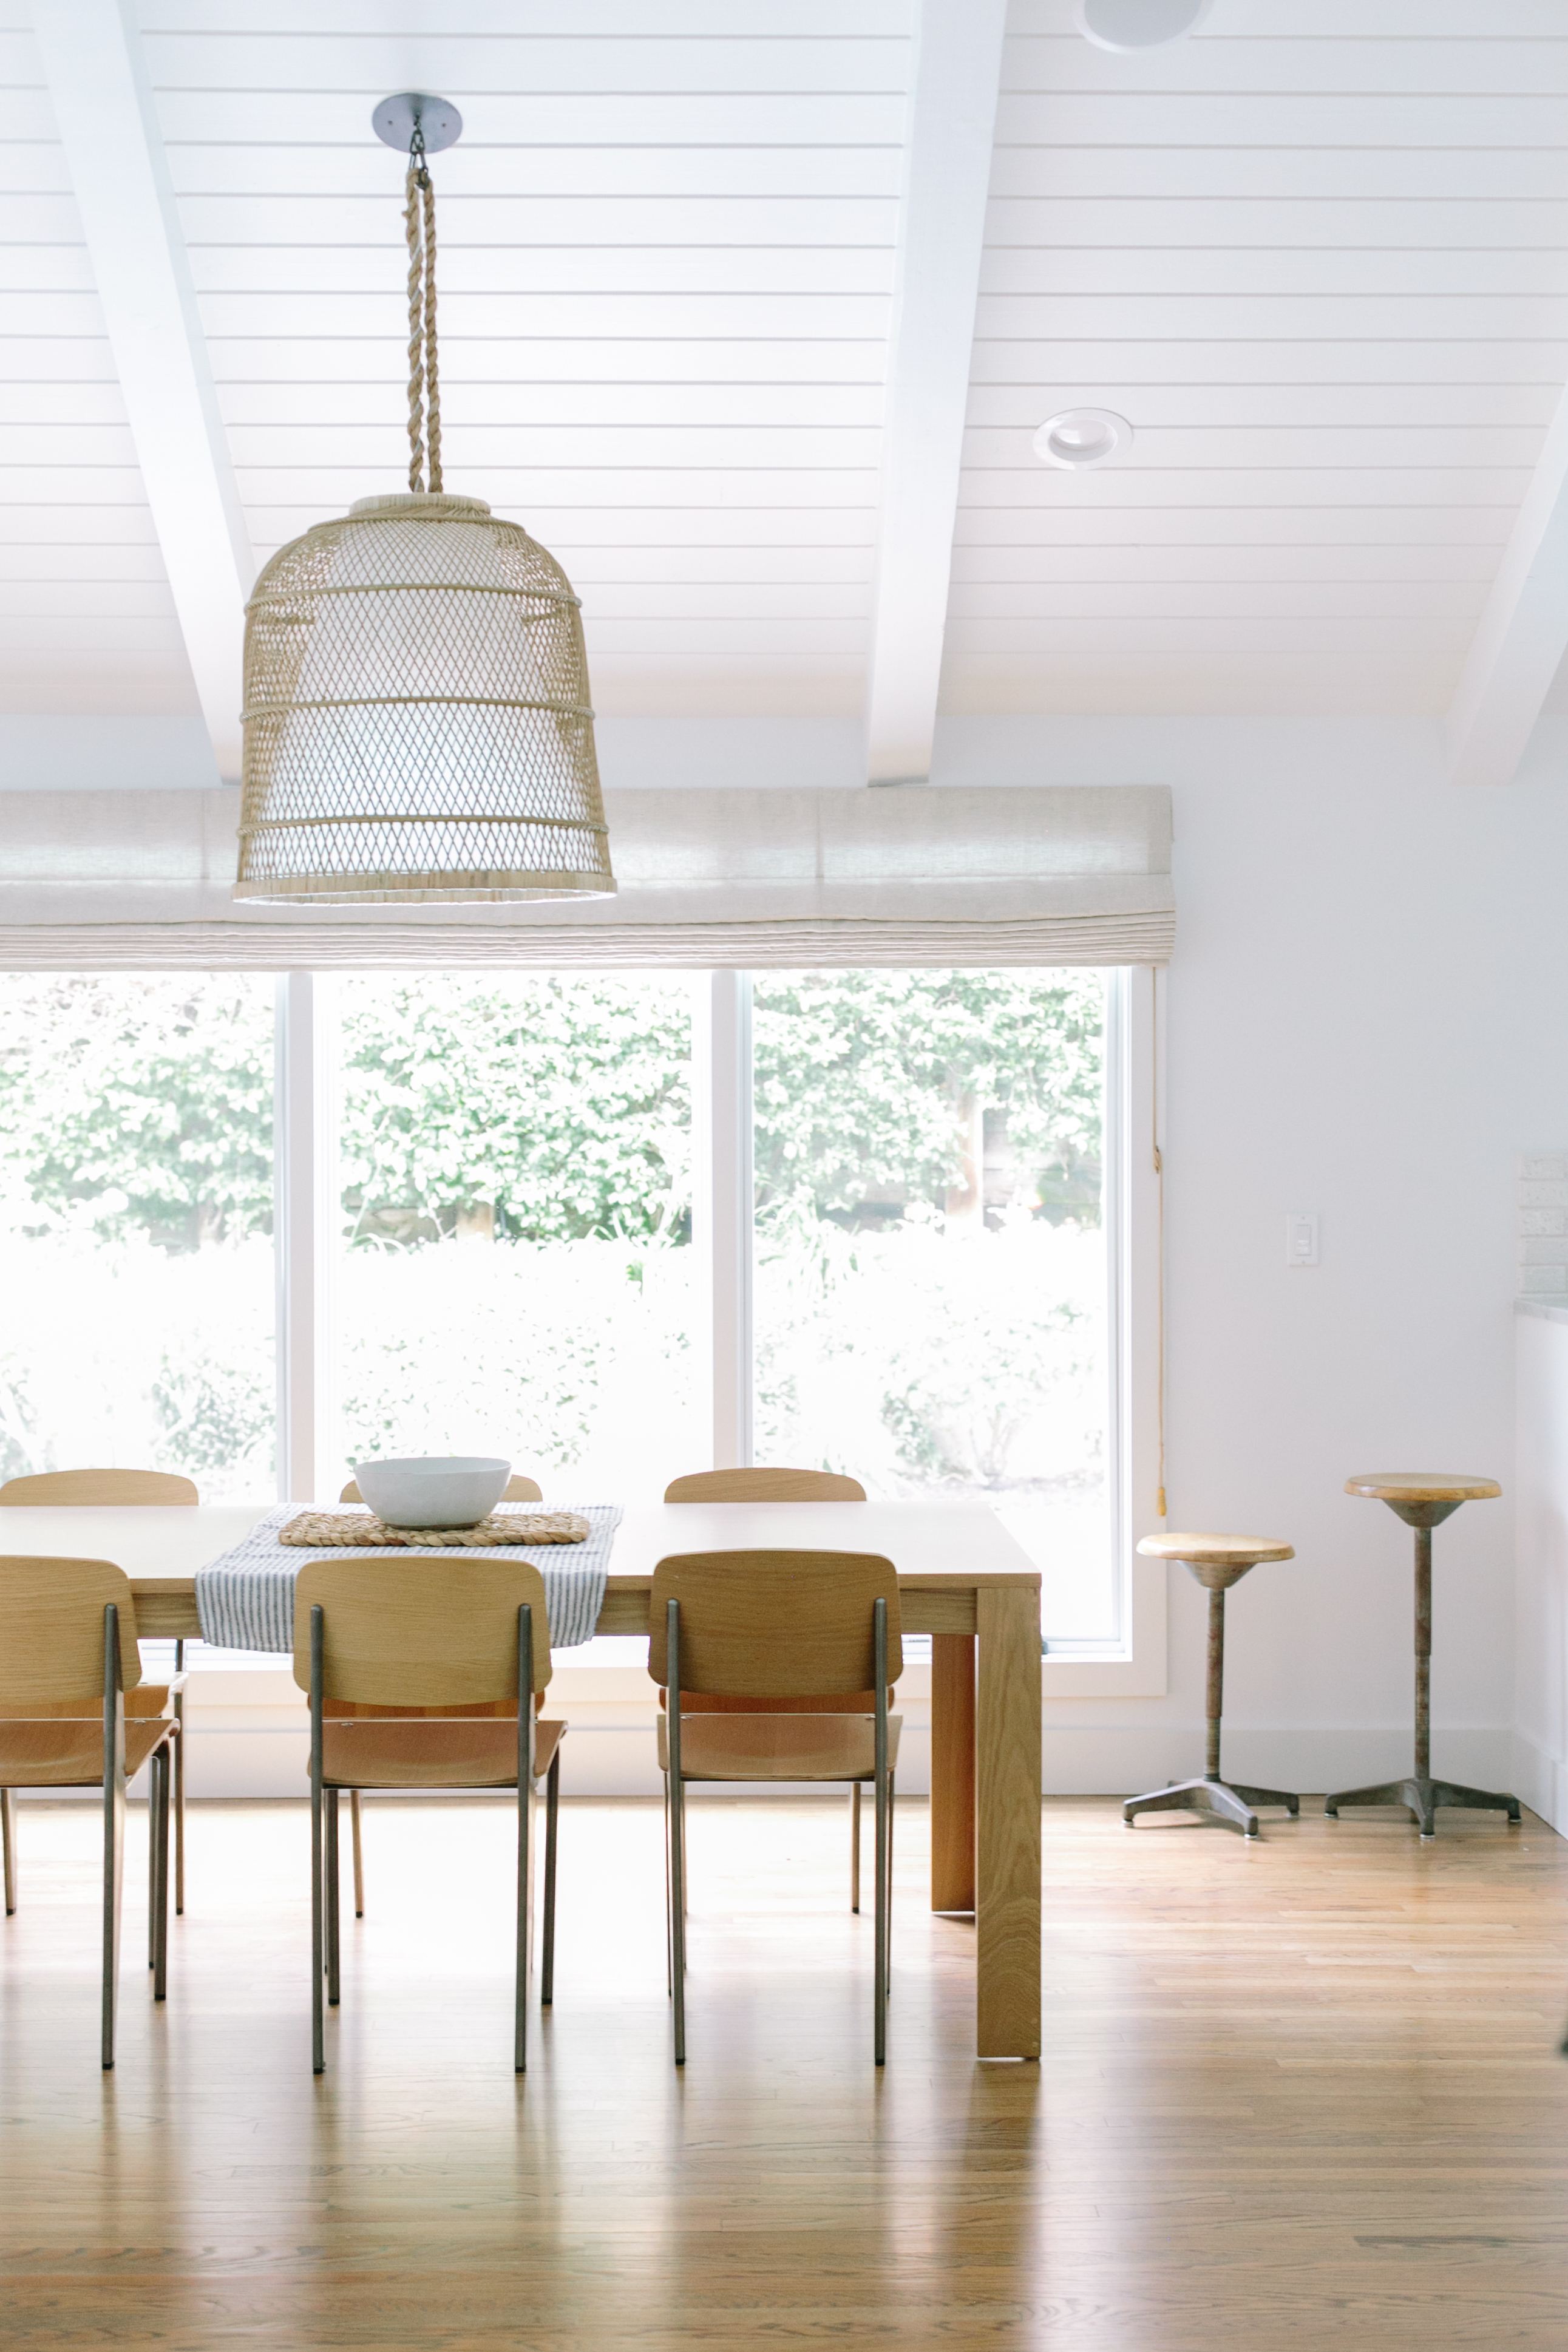 Everhem Roman shades hang in mid-century modern dining room with oversized pendant light.